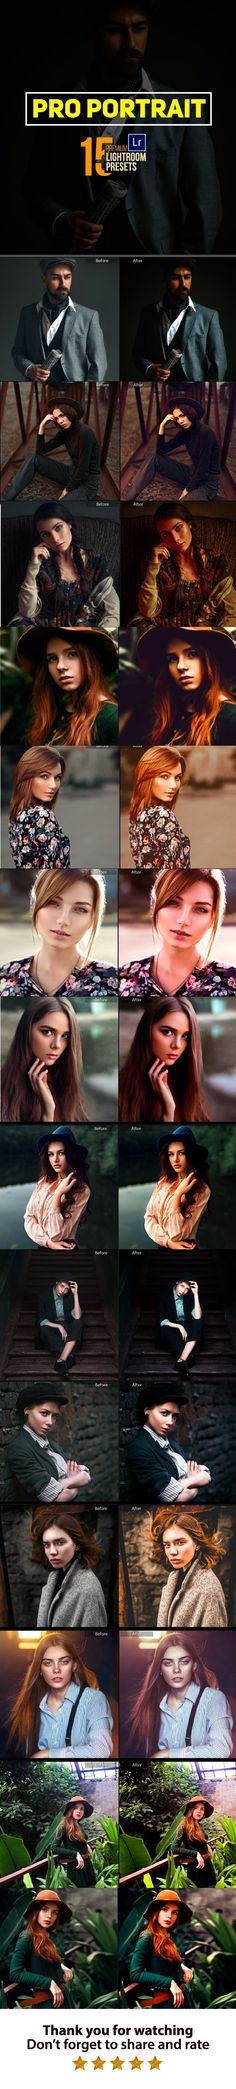 Buy 15 Pro Portrait Retouching Lightroom Presets by MukundiDigital on GraphicRiver. About 15 Pro Portrait Retouching Looking for a way to add a pop of freshness and intrigue to your images? Professional Lightroom Presets, Lightroom 4, Portrait Retouch, Portrait Photo, Photo Retouching, Photo Editing, Photoshop Video, Adobe Photoshop, Wedding Presets